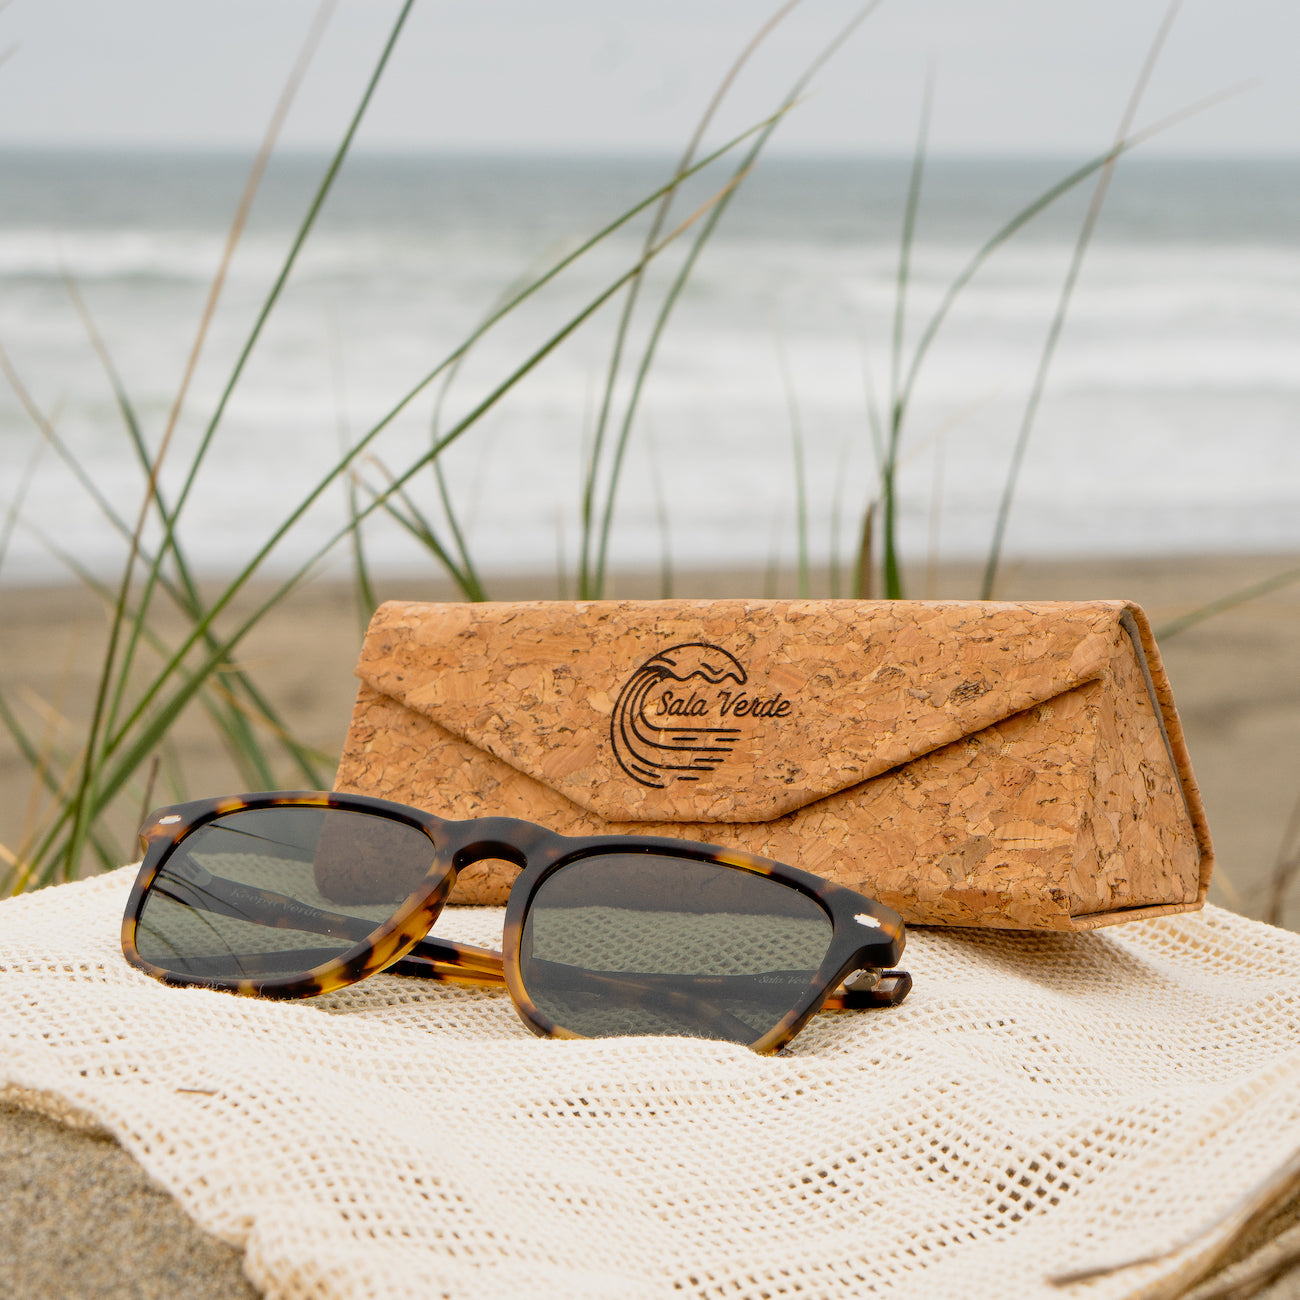 Sala Verde Ocean Friendly Sunglasses And Cork Case